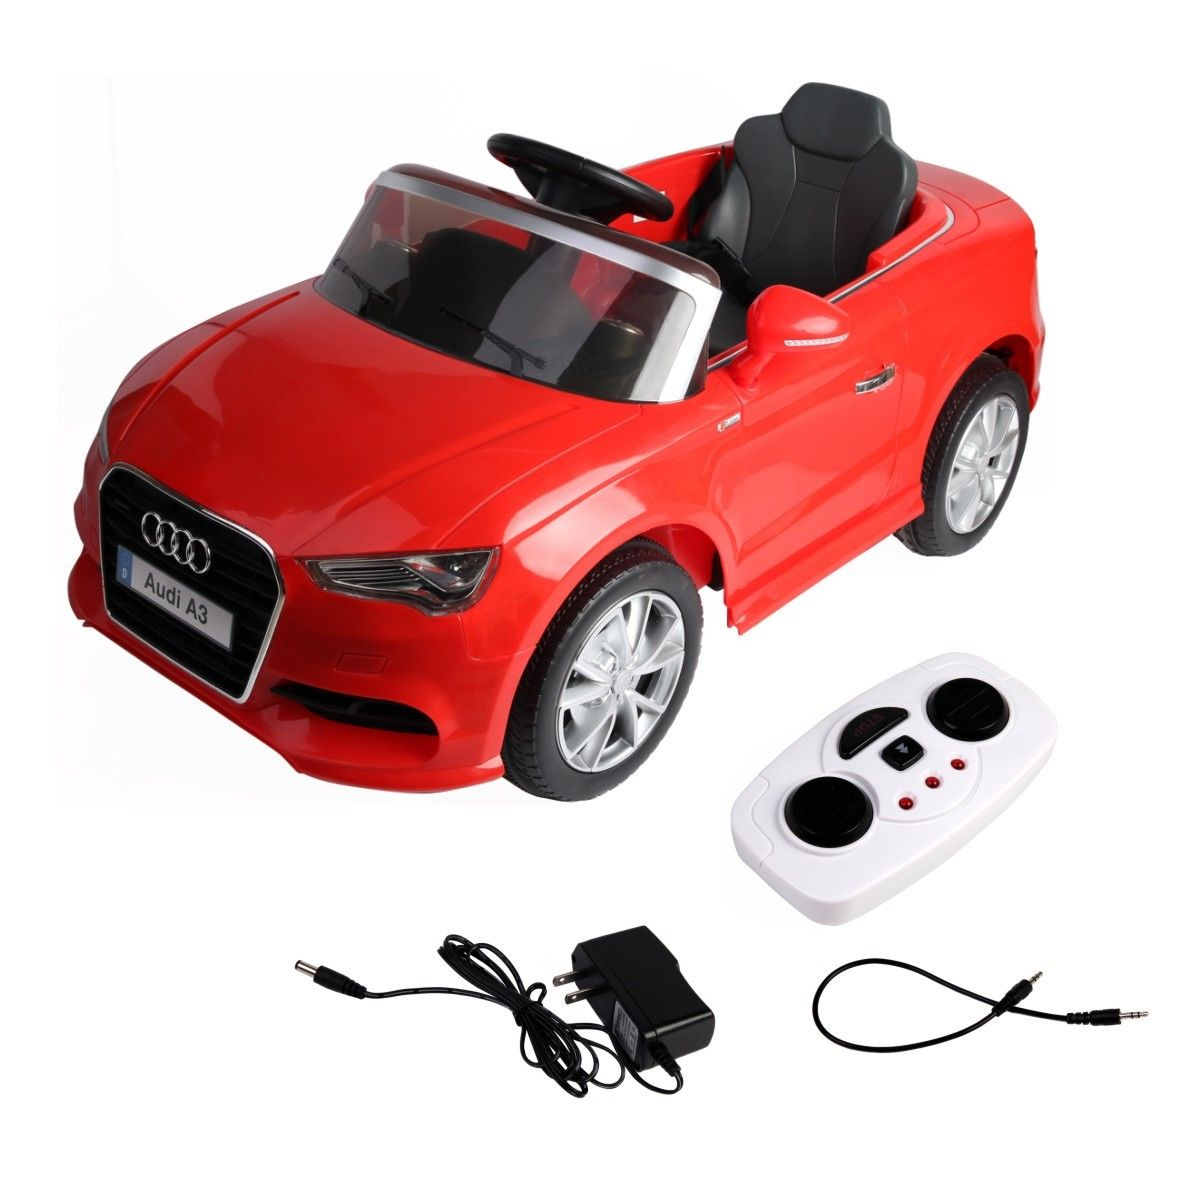 Goplus 12V Audi A3 Licensed RC Kids Ride On Car Electric Remote Control LED Light MP3 Music